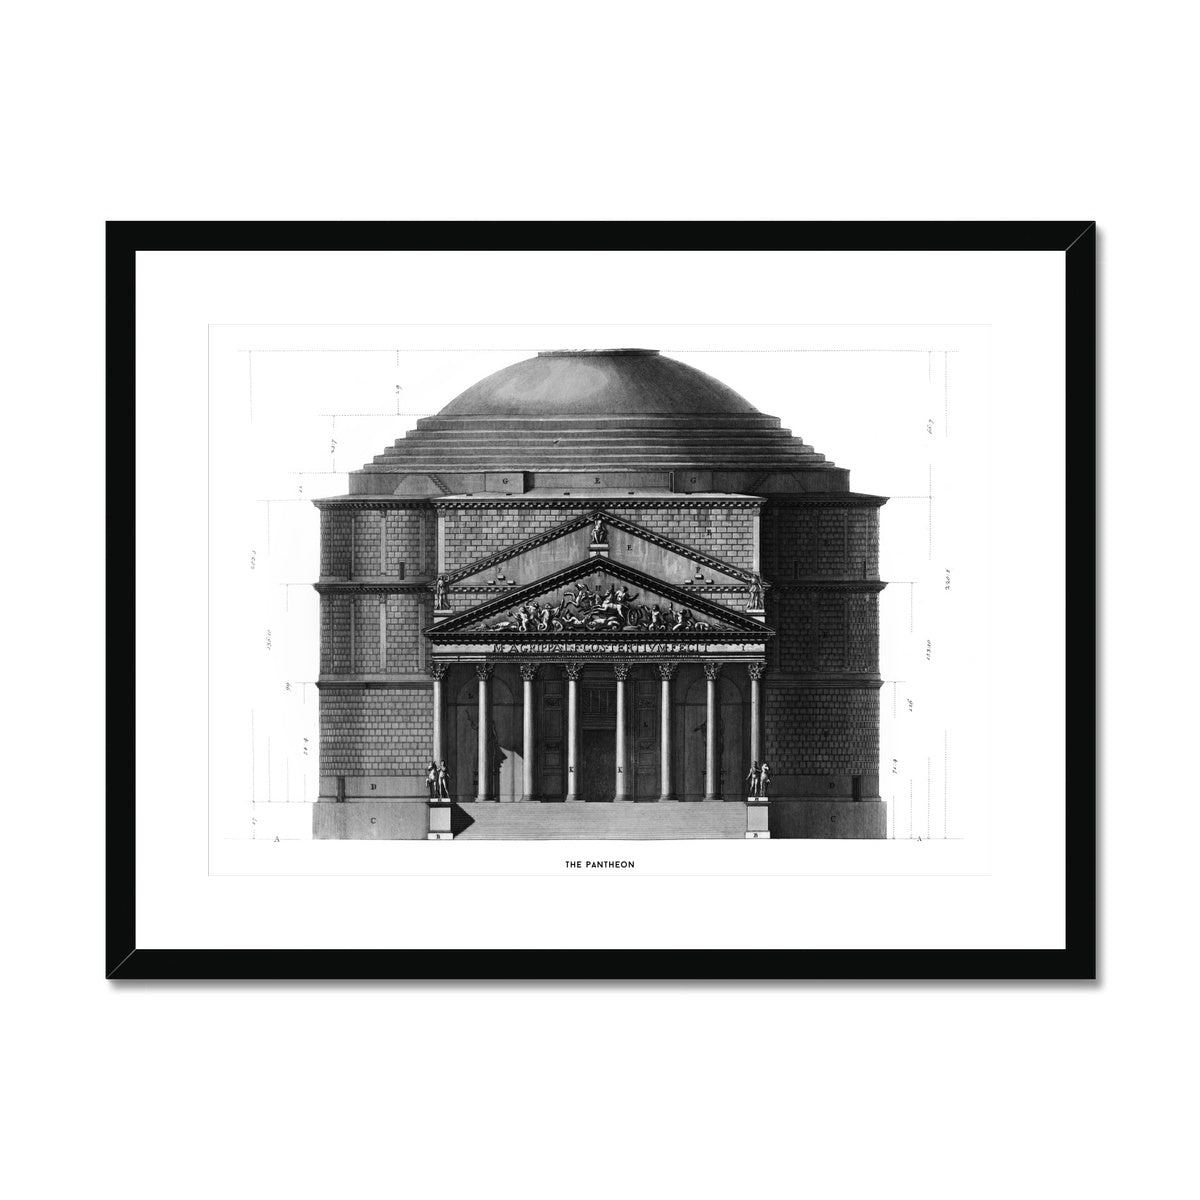 The Pantheon - Primary Elevation -  Framed & Mounted Print